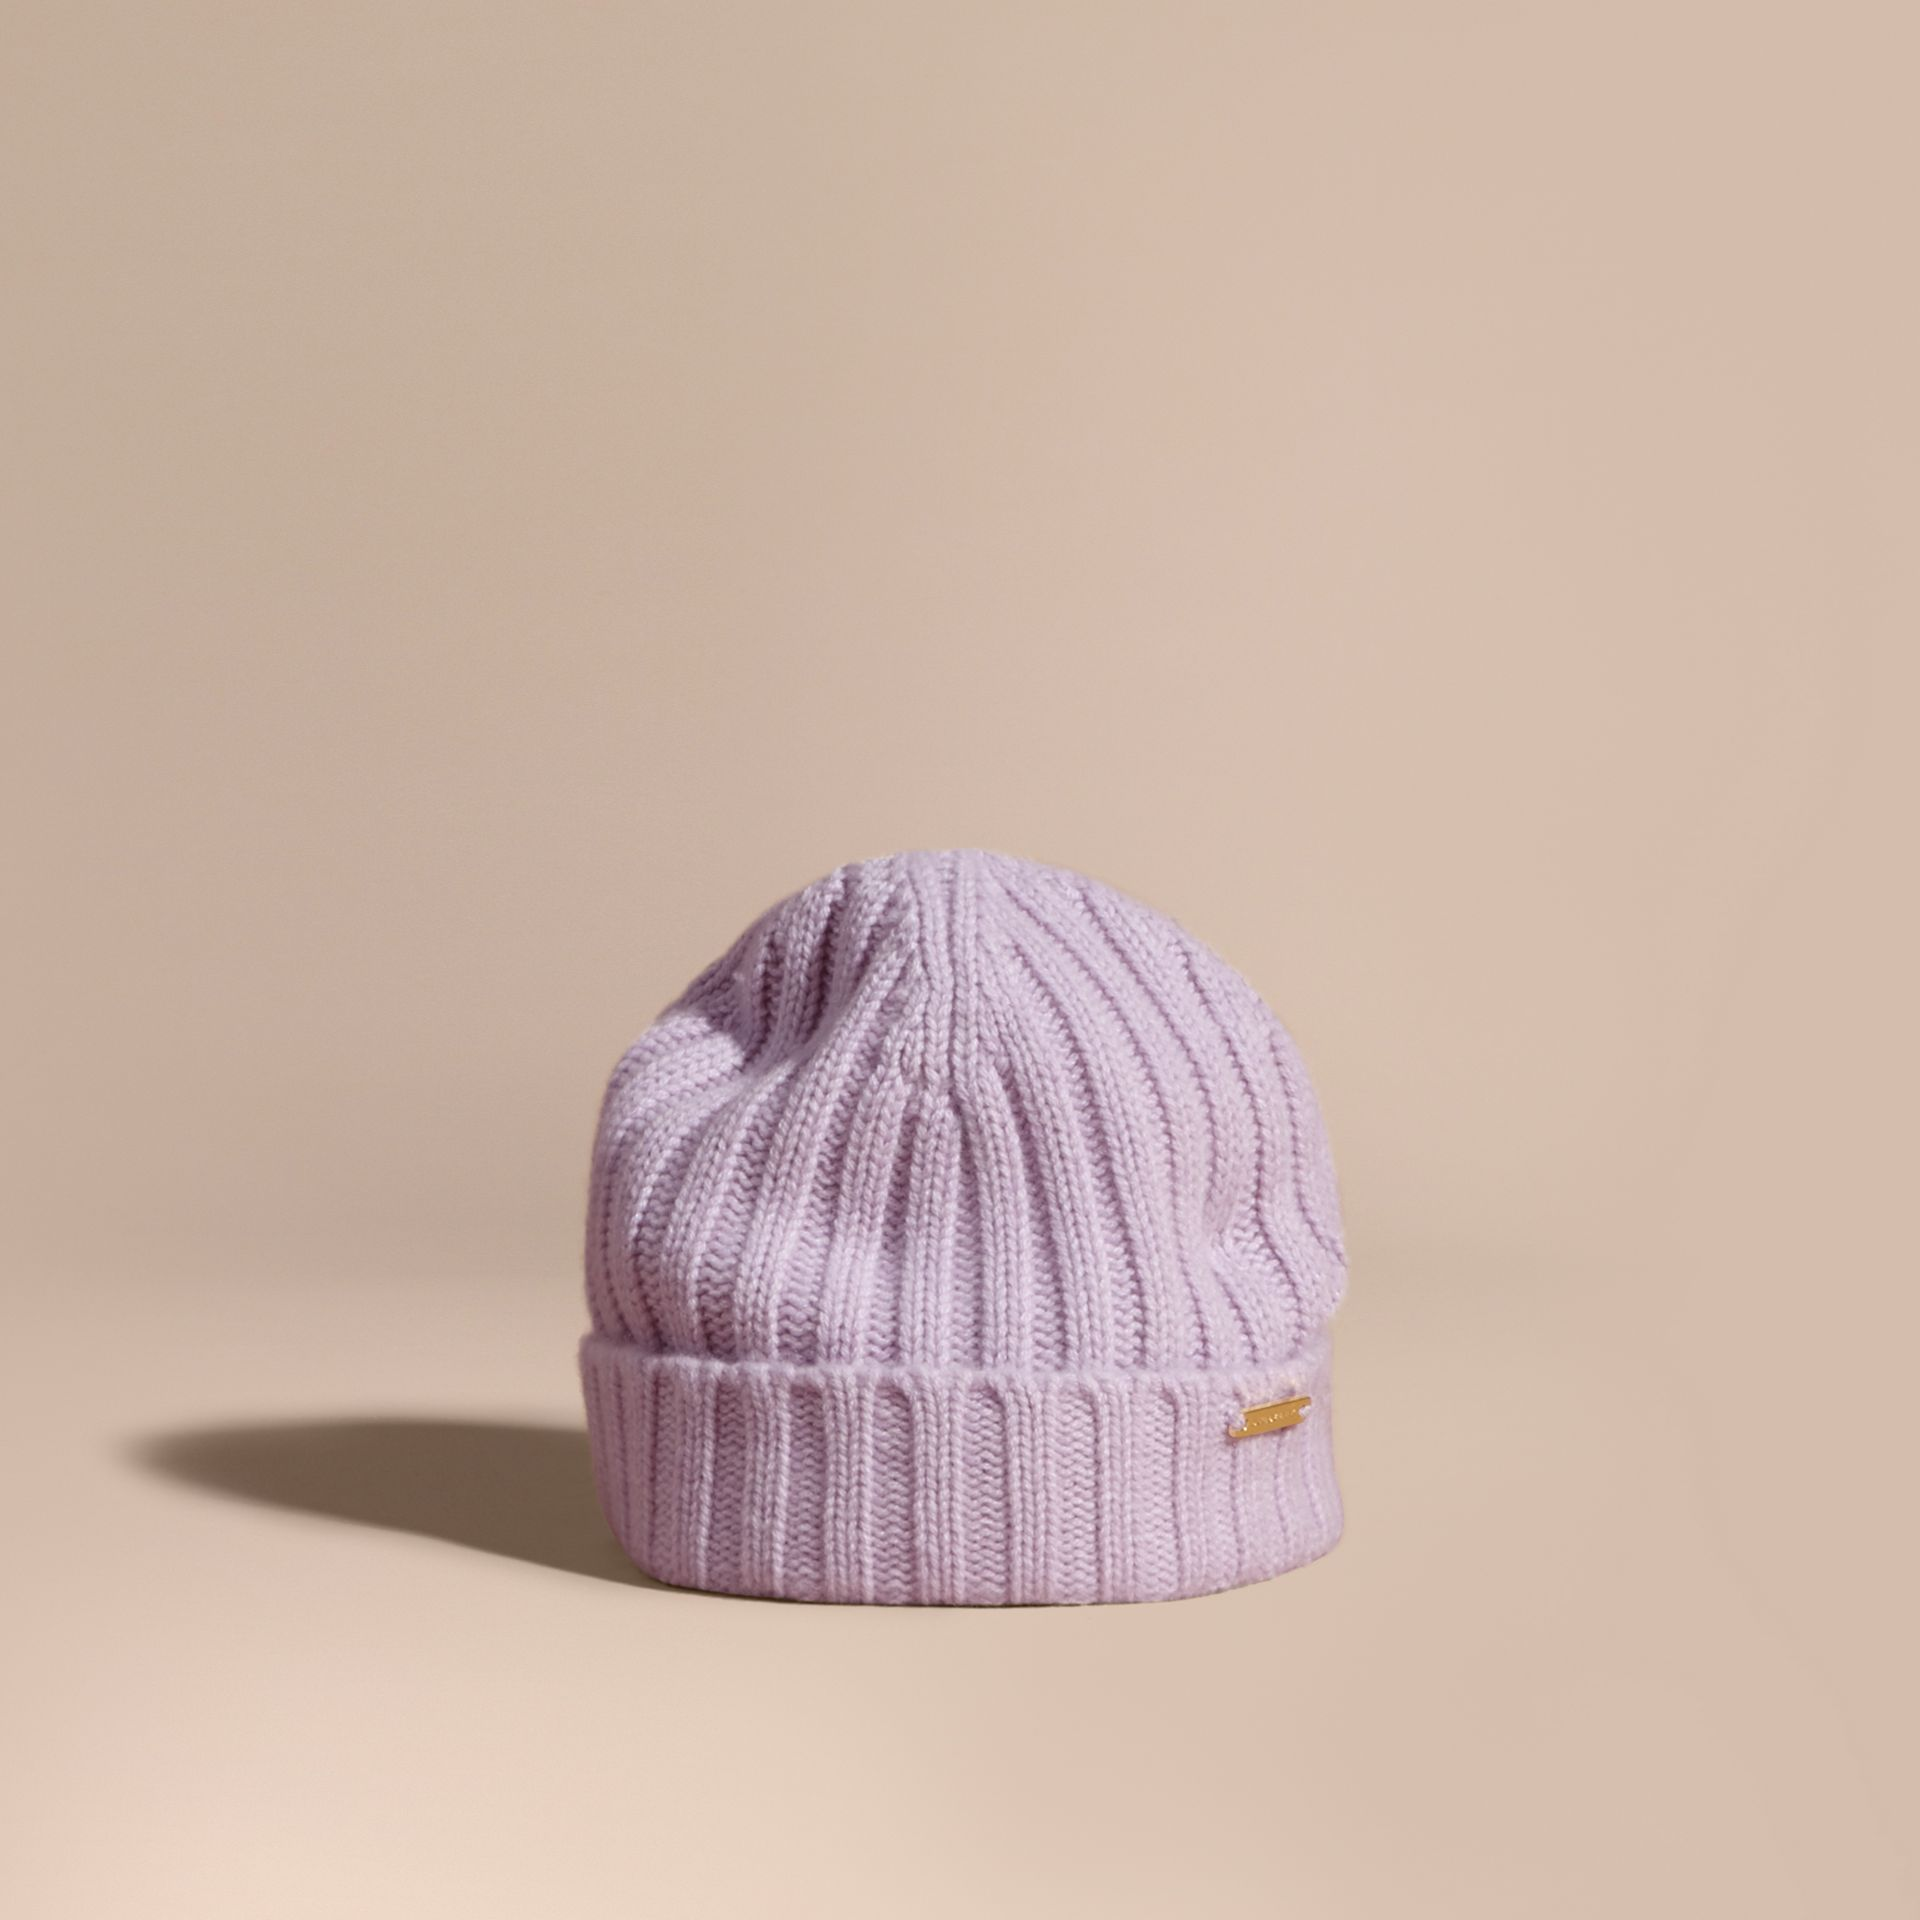 Ribbed Knit Wool Cashmere Beanie in Dusty Lilac - Women | Burberry - gallery image 1